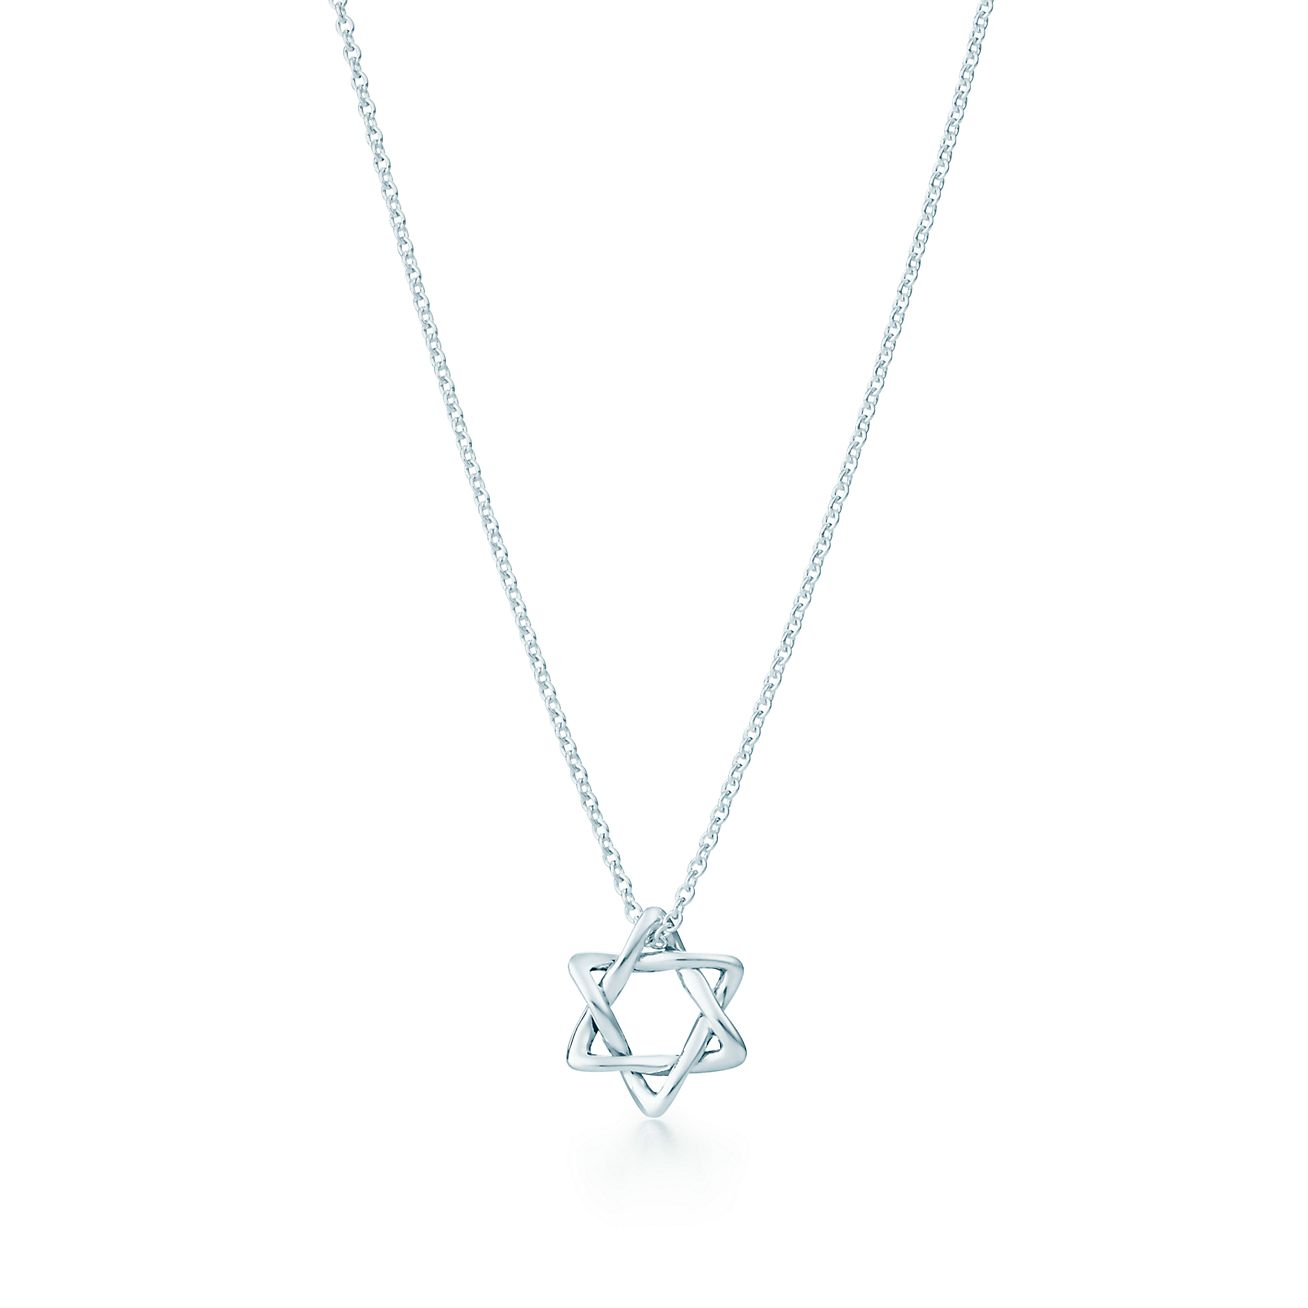 Star of David Necklace TgUXjAy